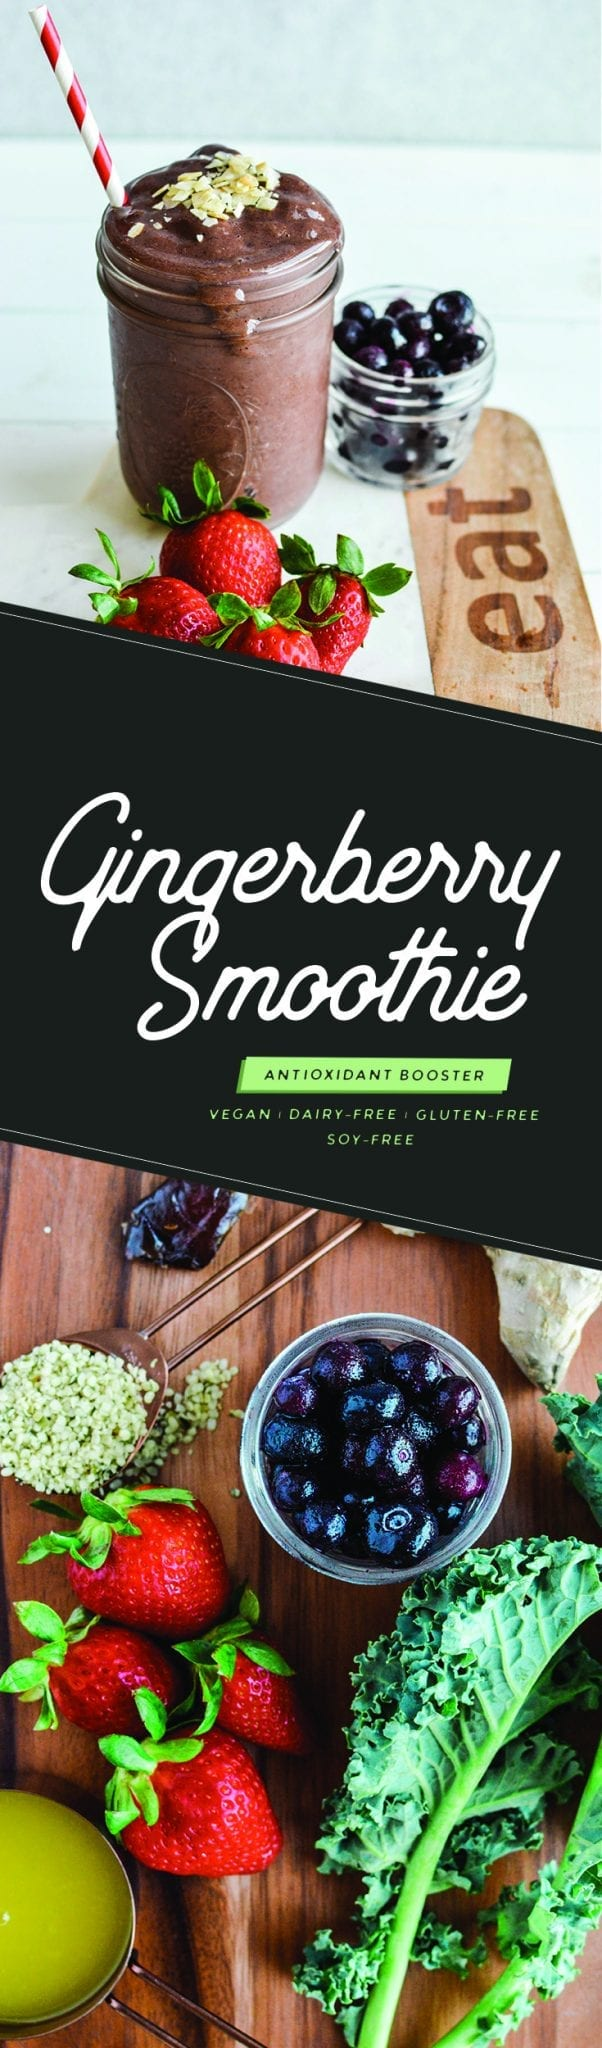 Gingerberry Smoothie | Vegan | Dairy-Free | Gluten-Free | Soy-Free